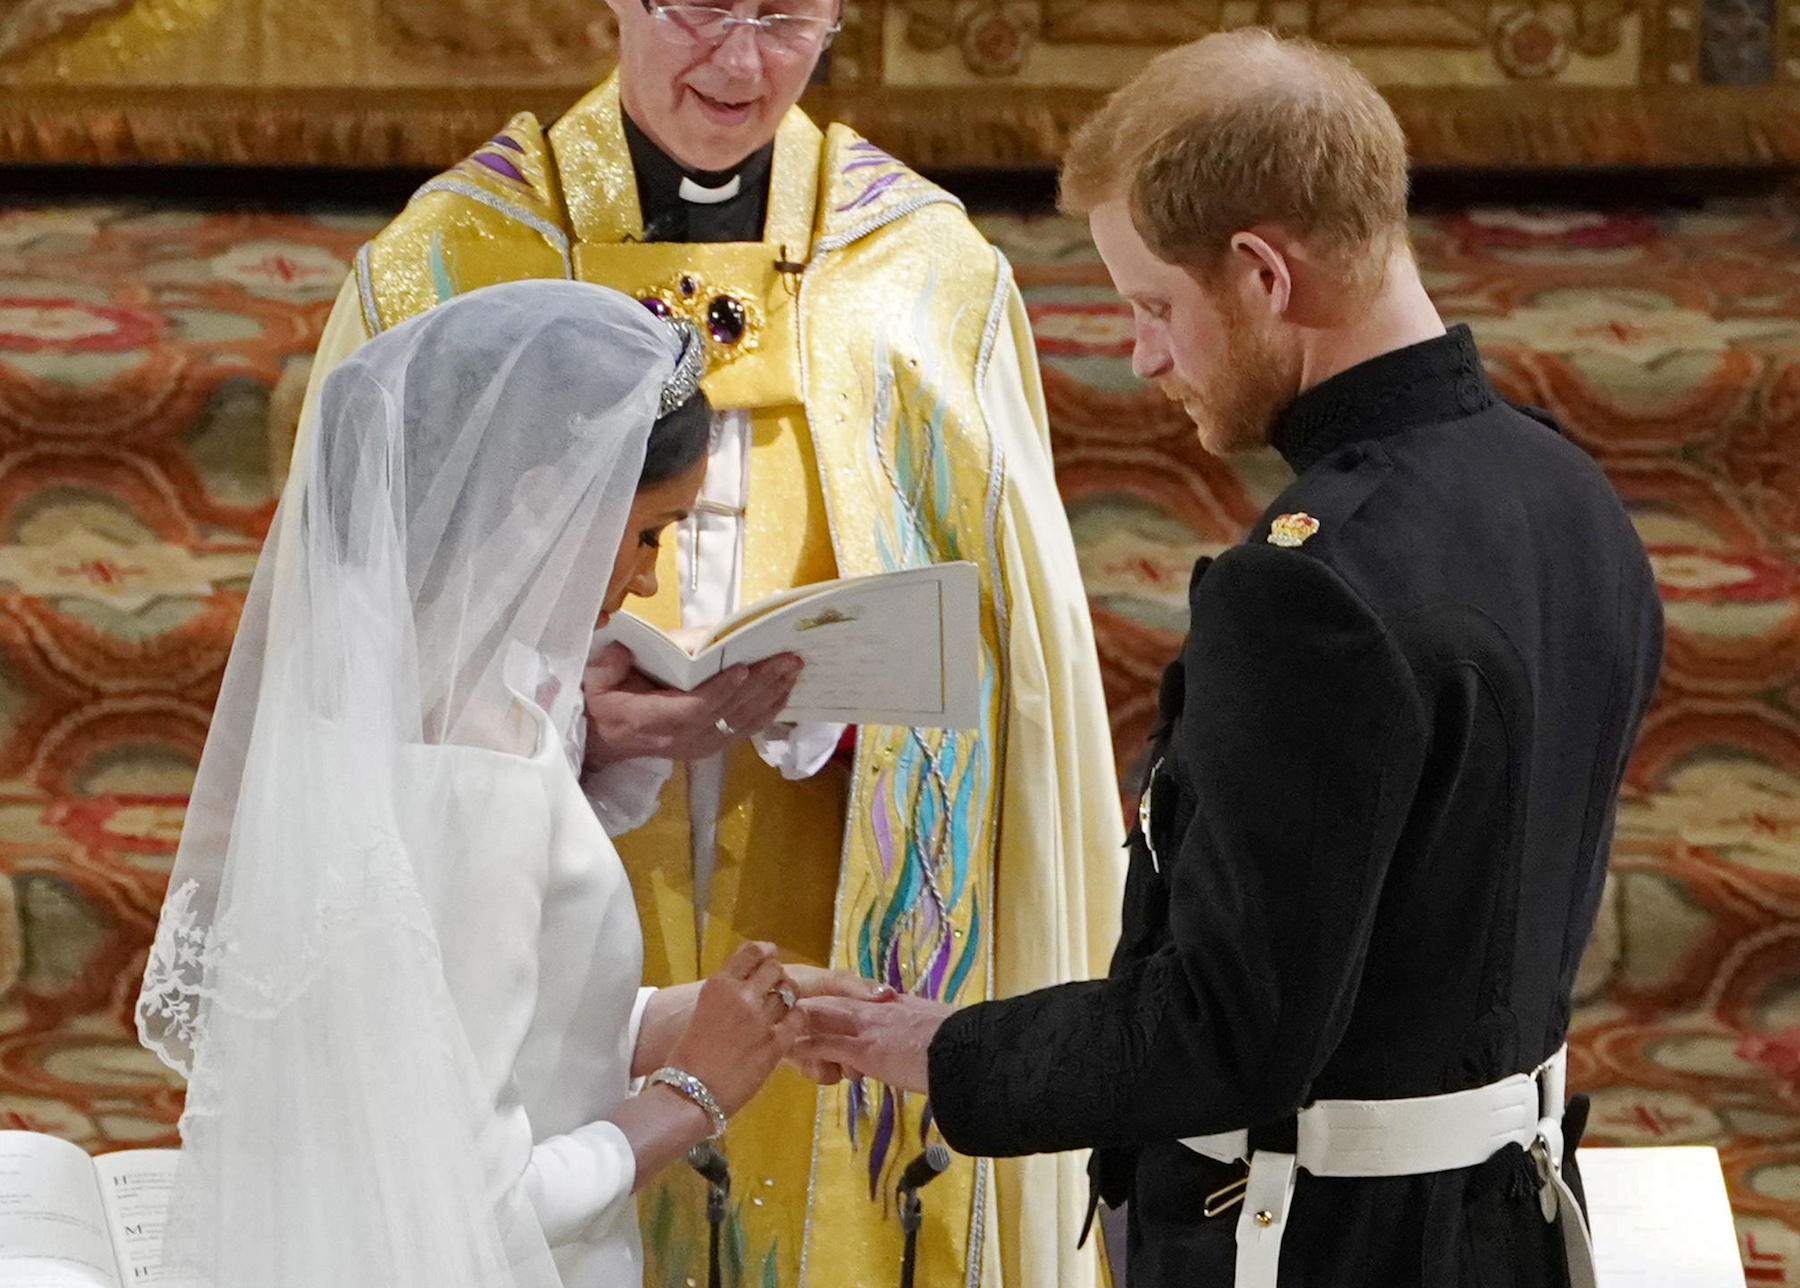 <div class='meta'><div class='origin-logo' data-origin='Creative Content'></div><span class='caption-text' data-credit='Owen Humphrey/AFP/Getty Images'>US fiancee of Britain's Prince Harry Meghan Markle and Britain's Prince Harry, Duke of Sussex exchange rings during their wedding ceremony in St George's Chapel.</span></div>